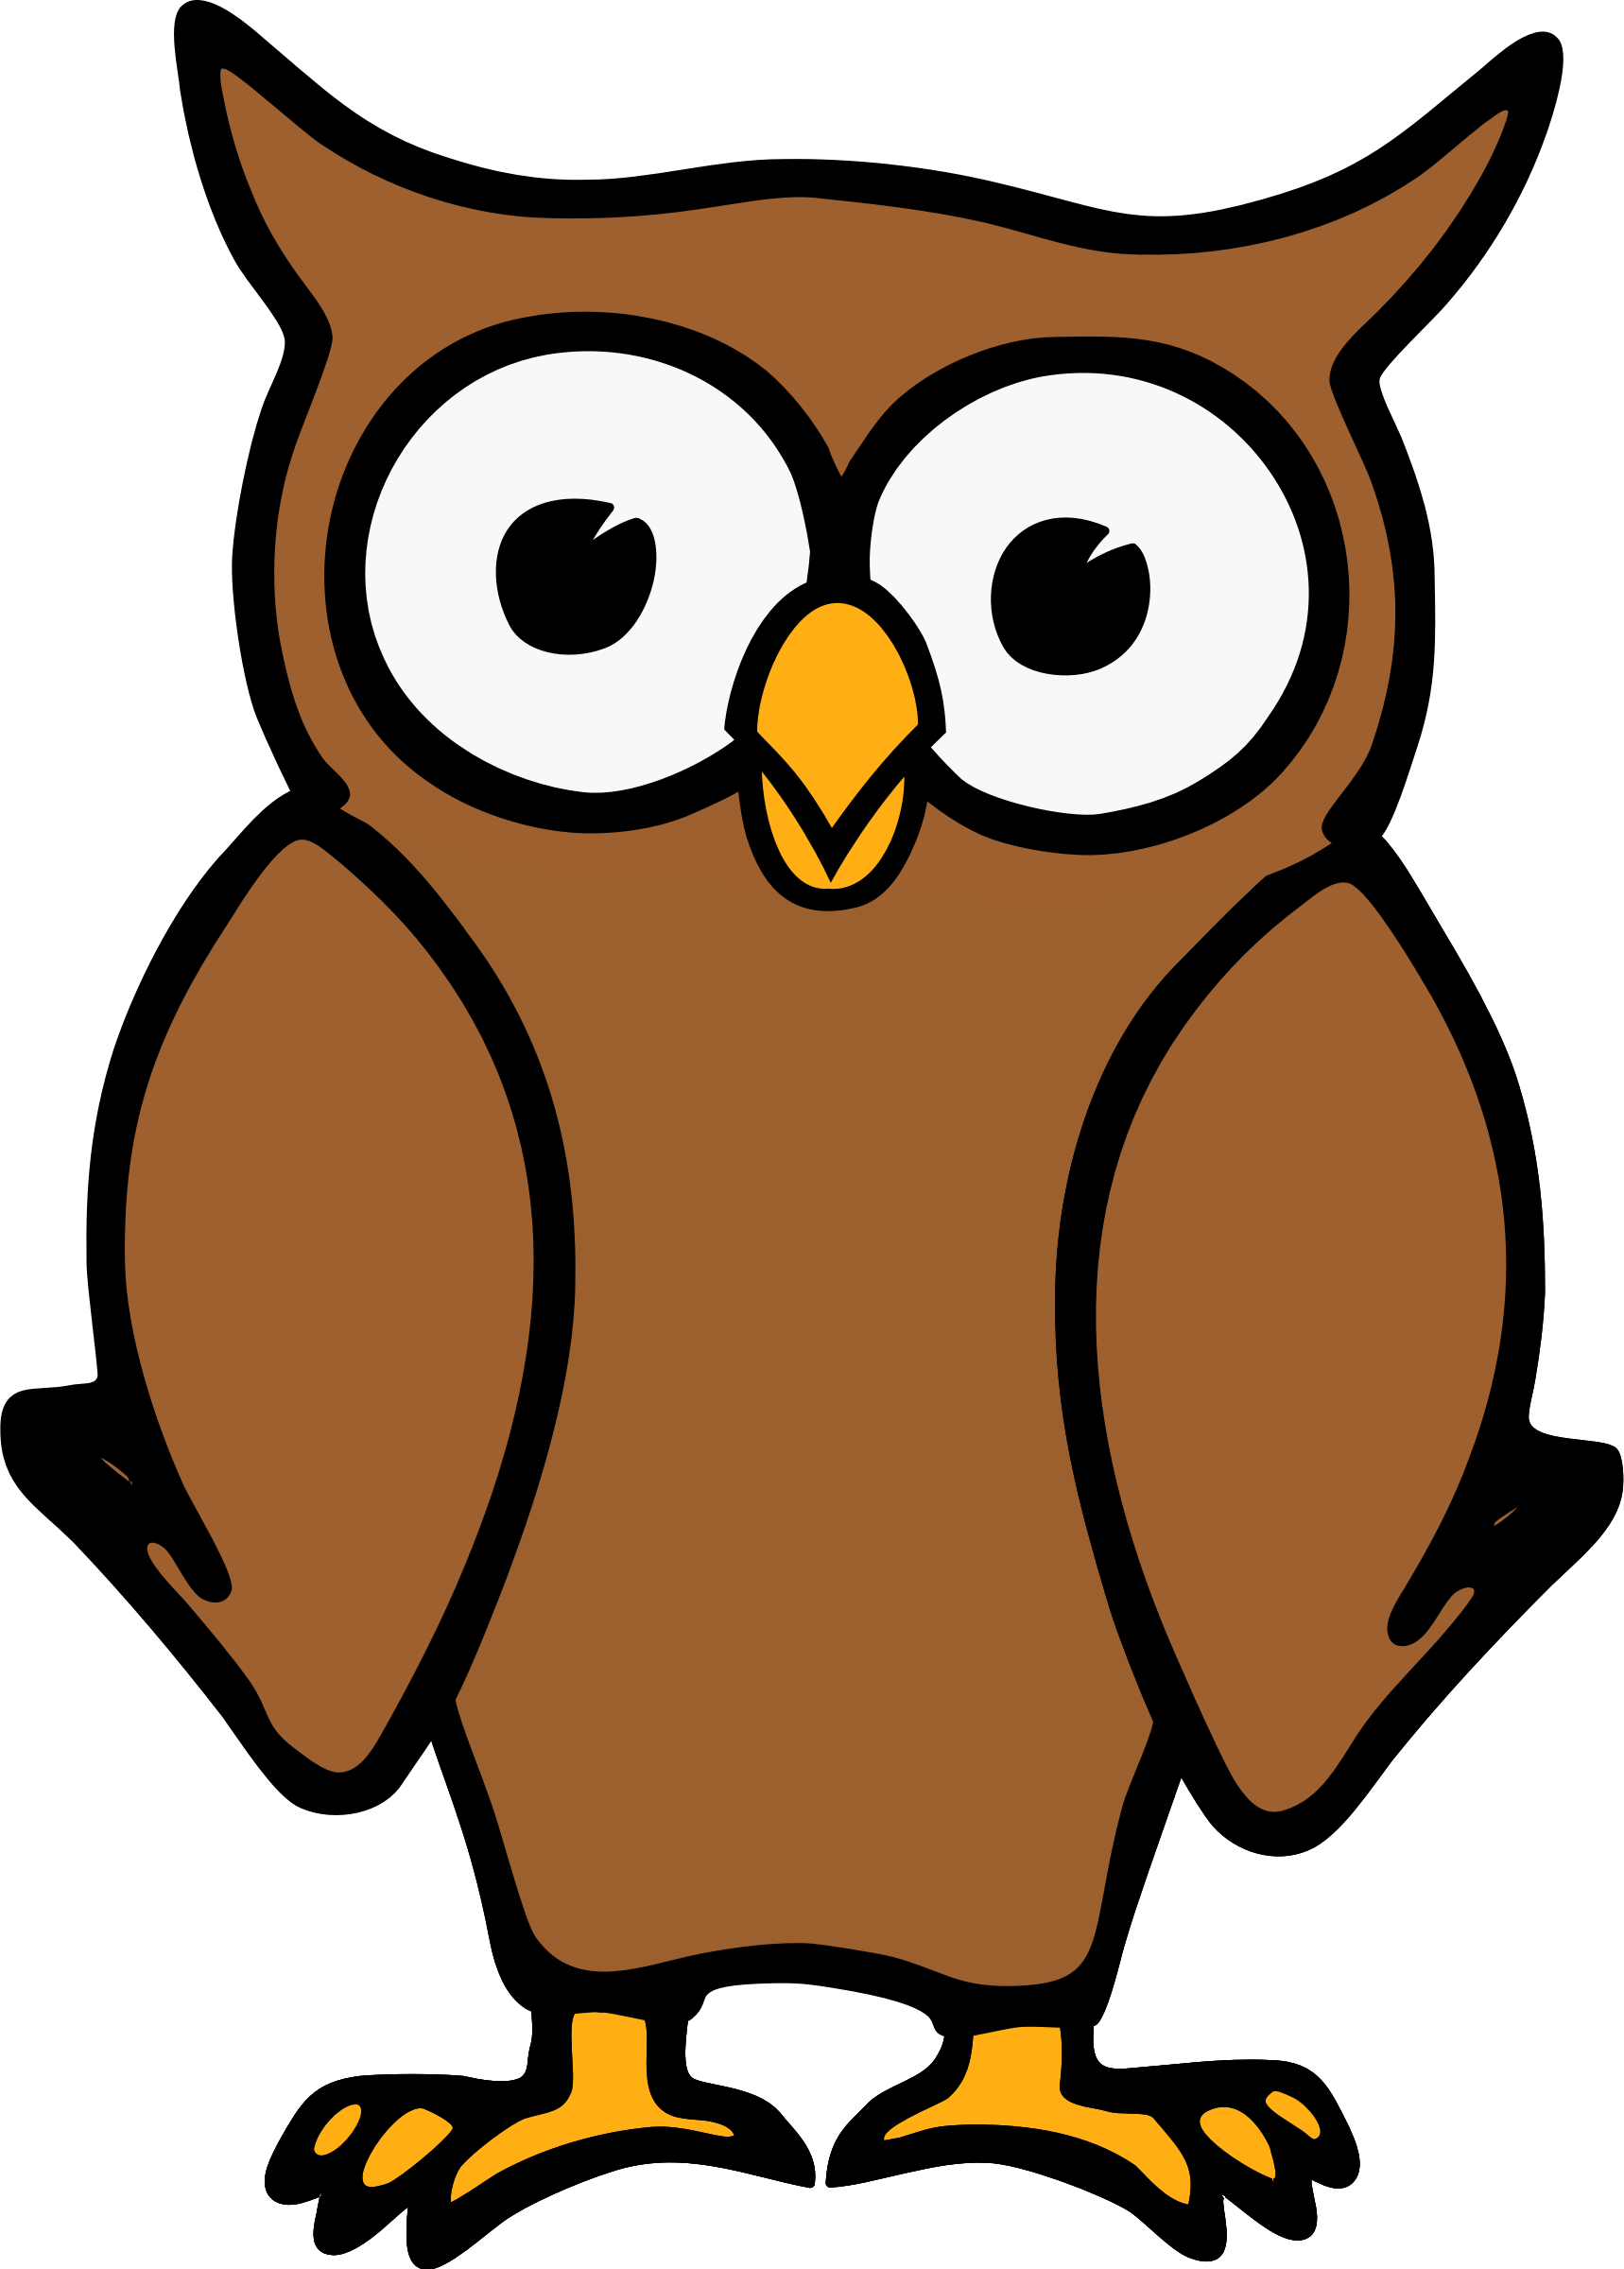 Brown Cartoon Owl Vector Clipart image - Free stock photo ...